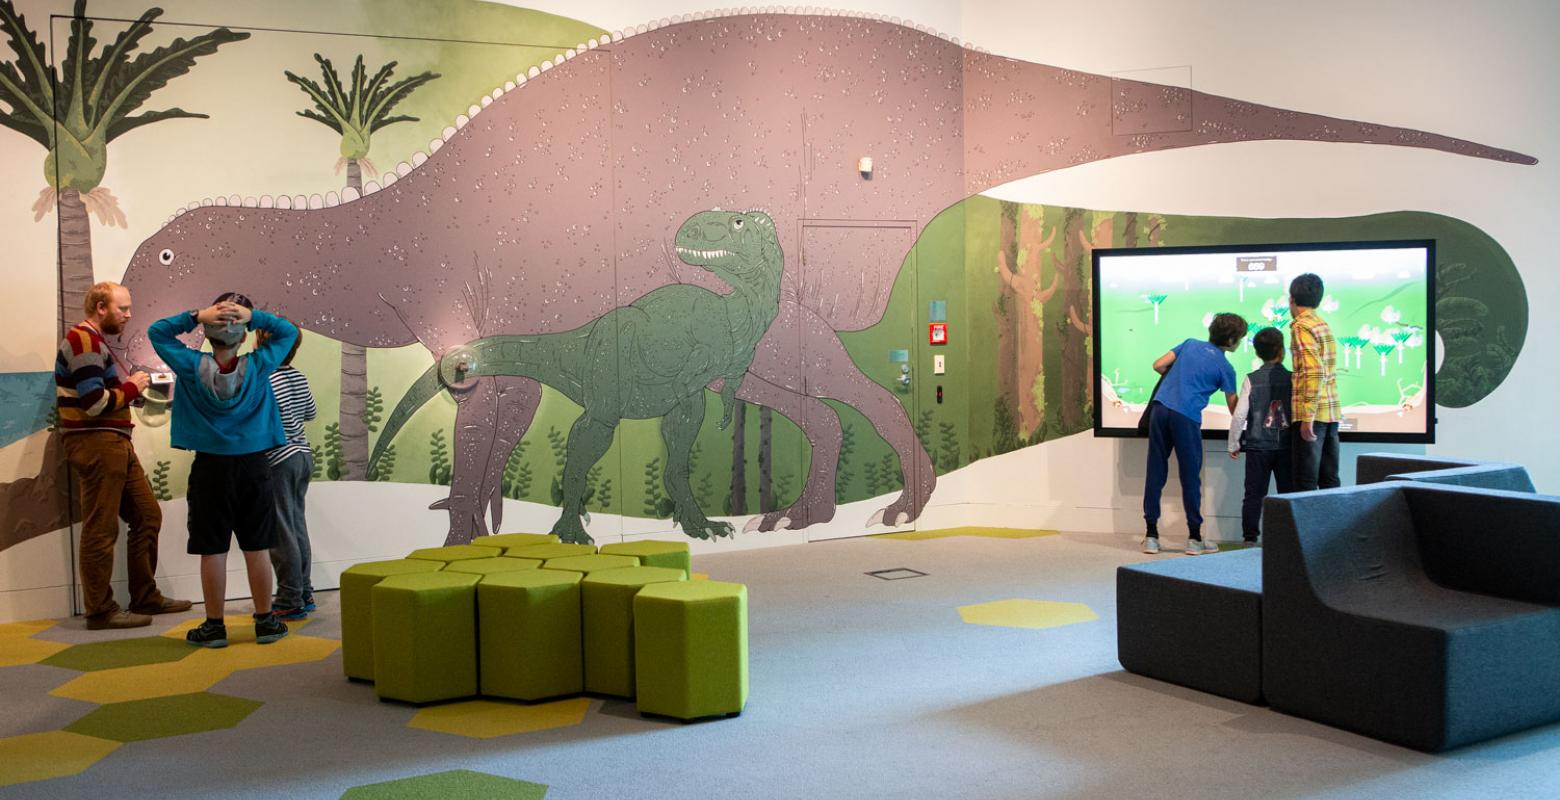 People in a room with large dinosaurs painted on the walls